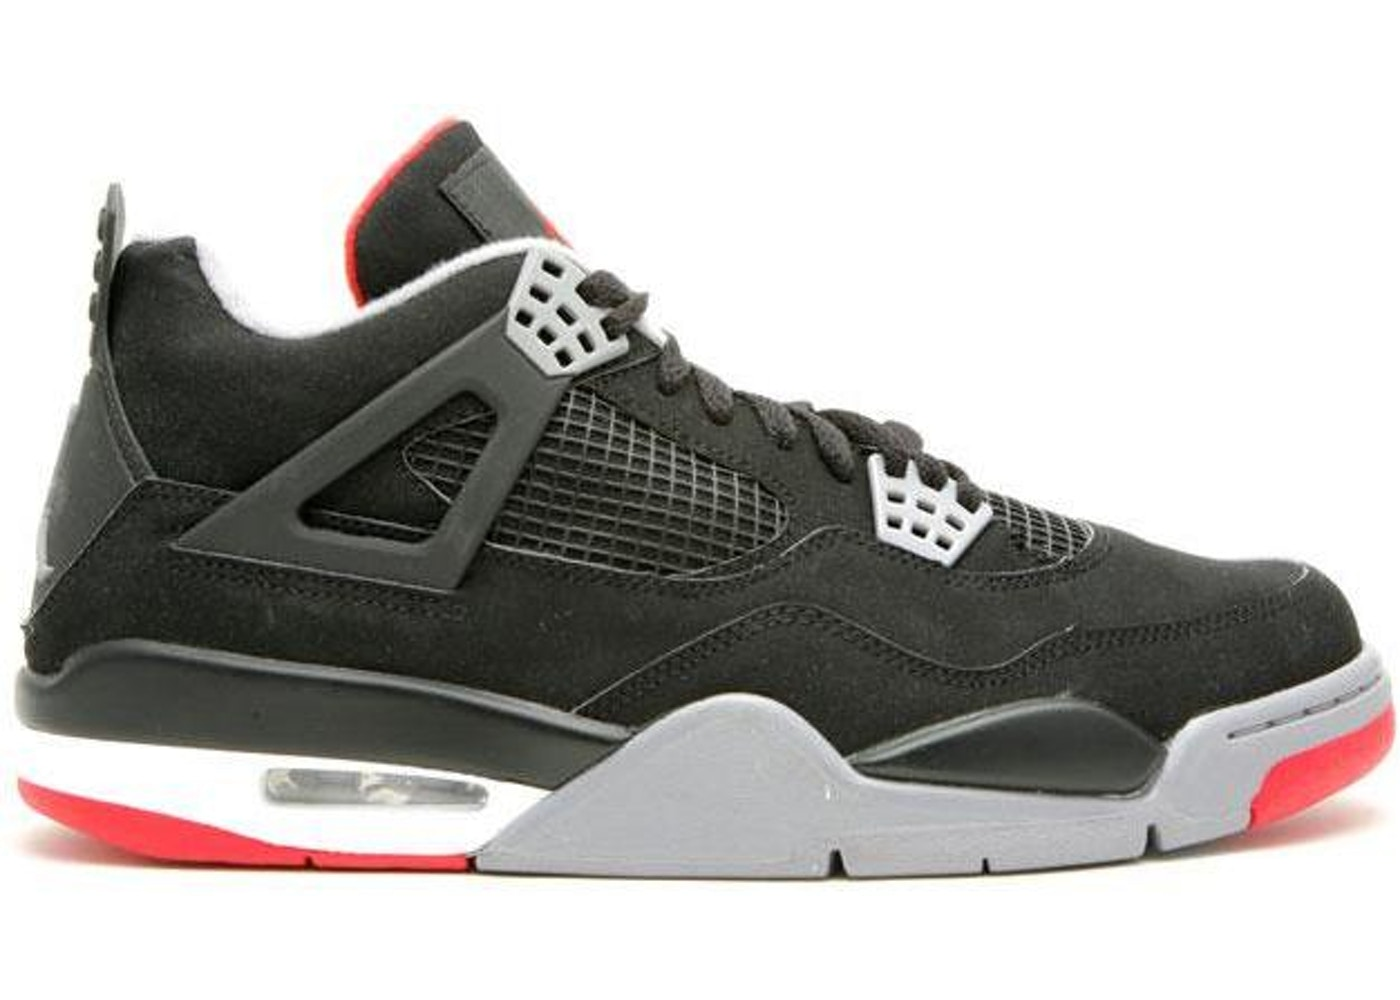 7f4464ff51b1e5 Jordan 4 Retro Black Cement CDP (2008) - 308497-003